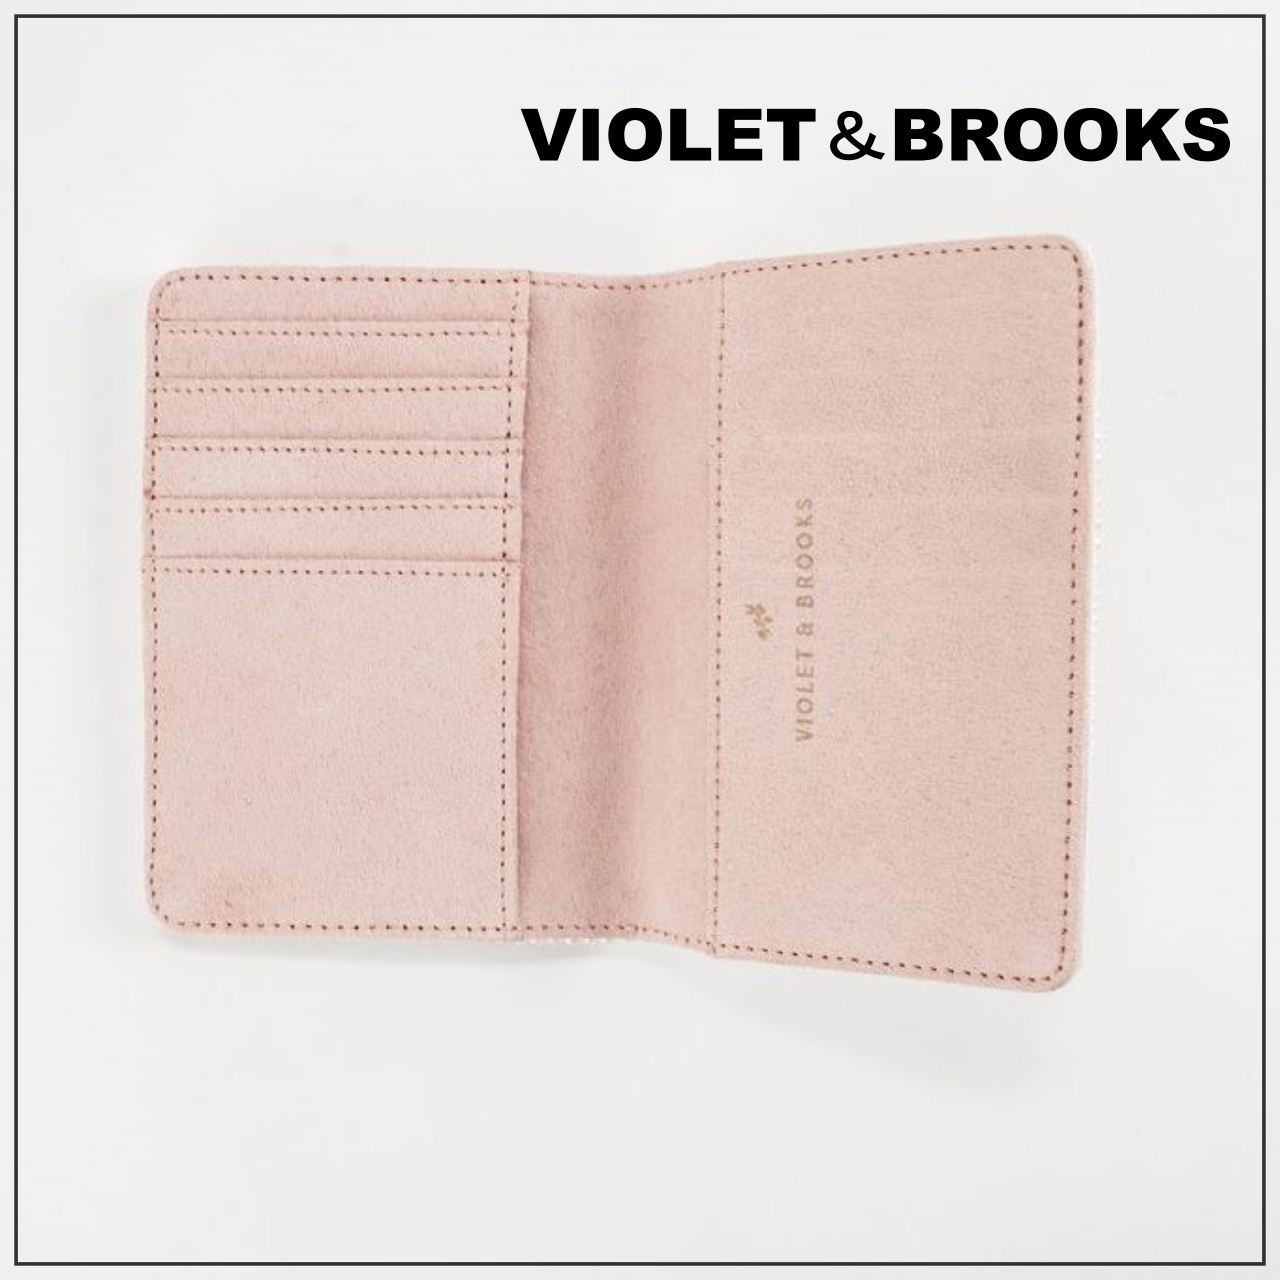 shop violet & brooks wallets & card holders